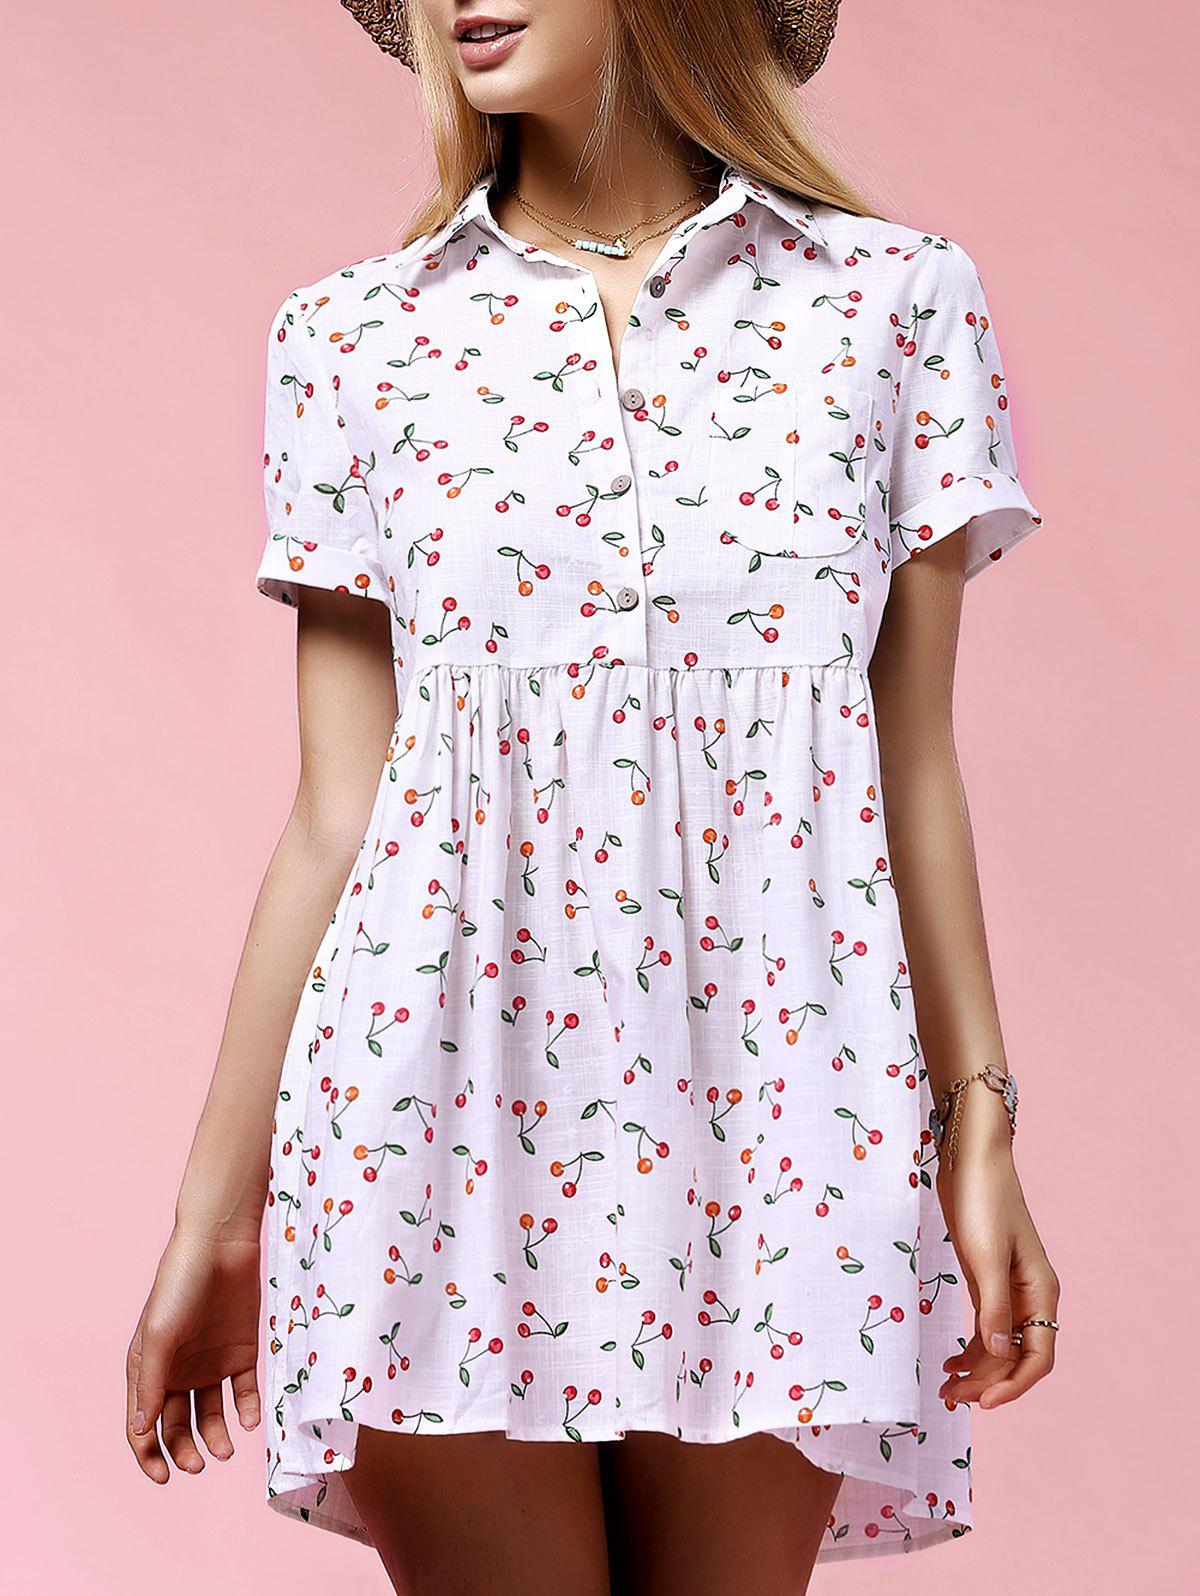 Store Sweet Short Sleeve Cherry Print Women's Mini Dress